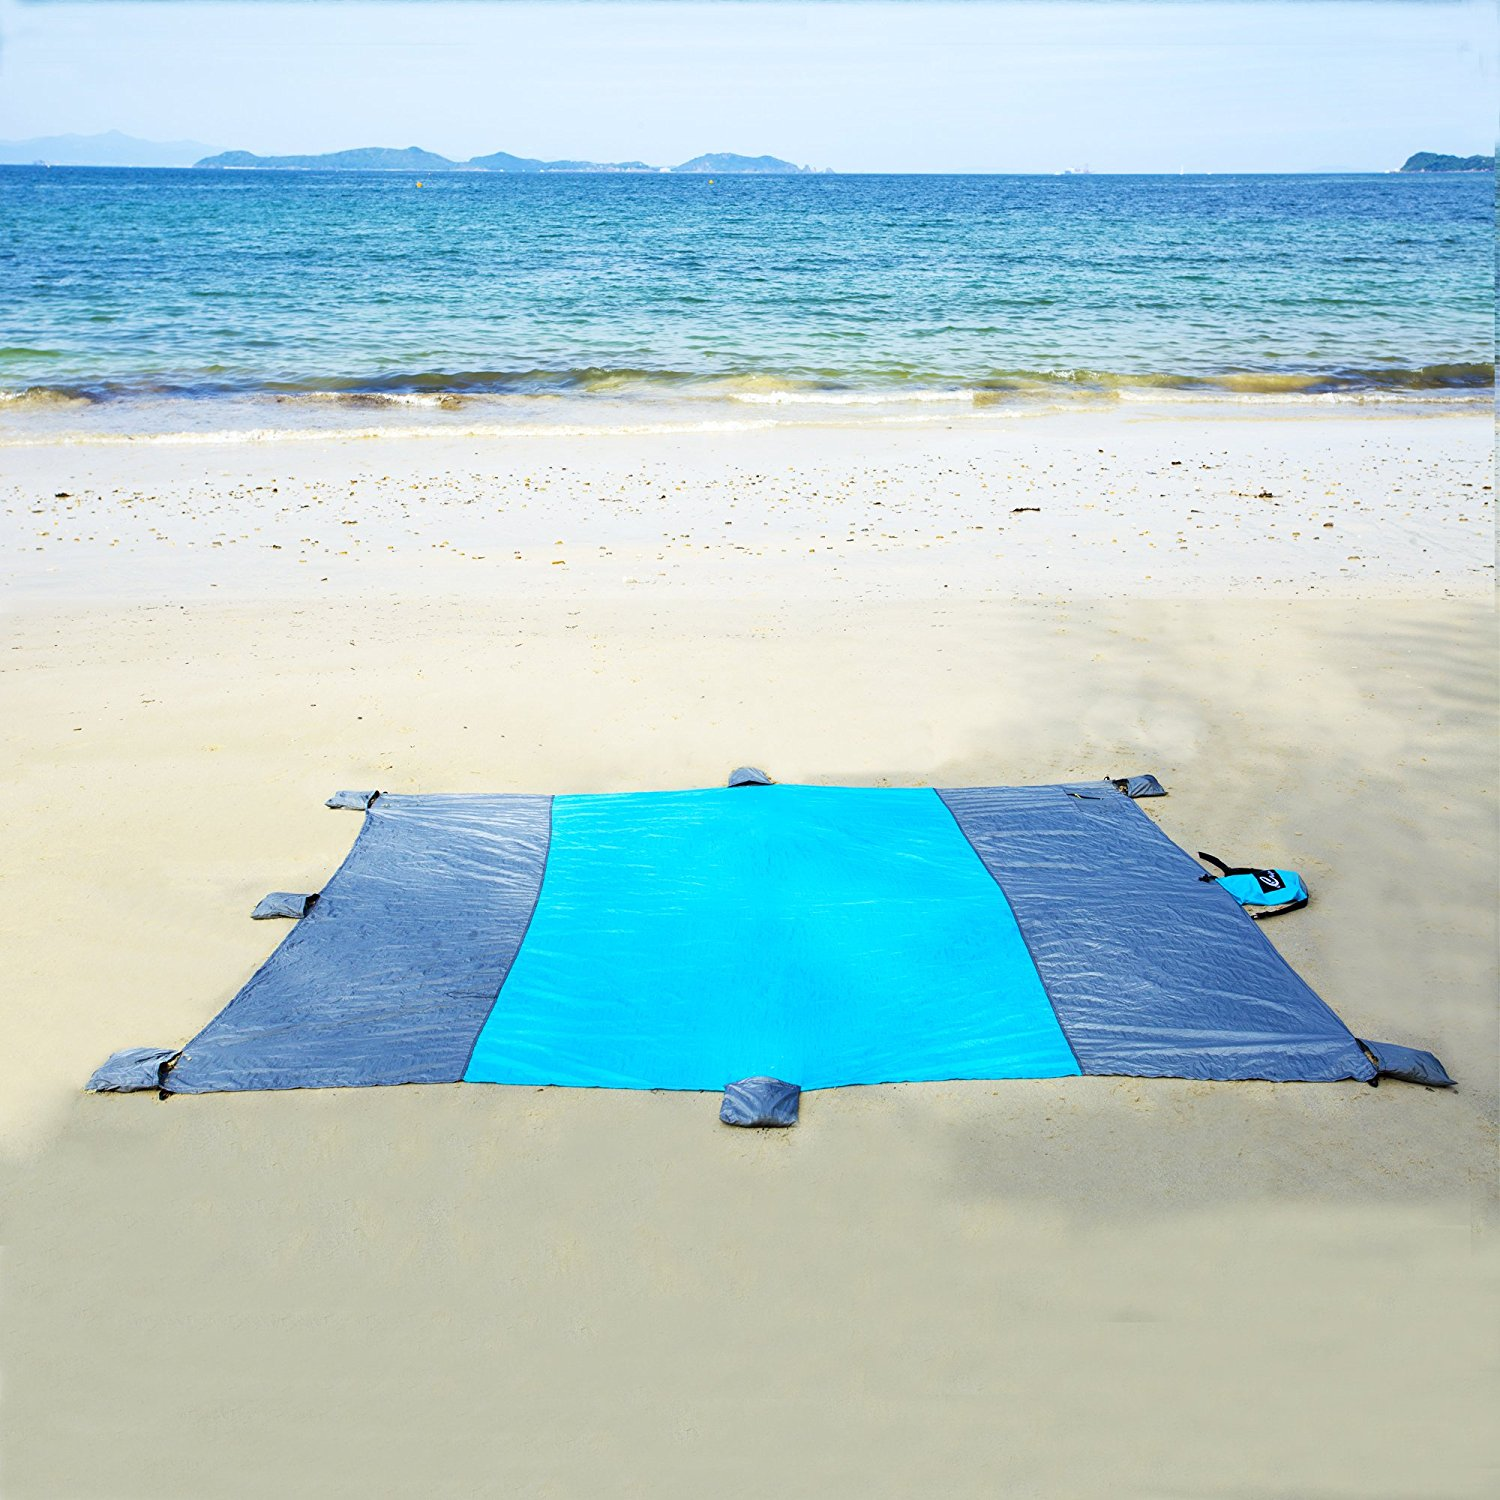 iChefer sand-proof beach blanket